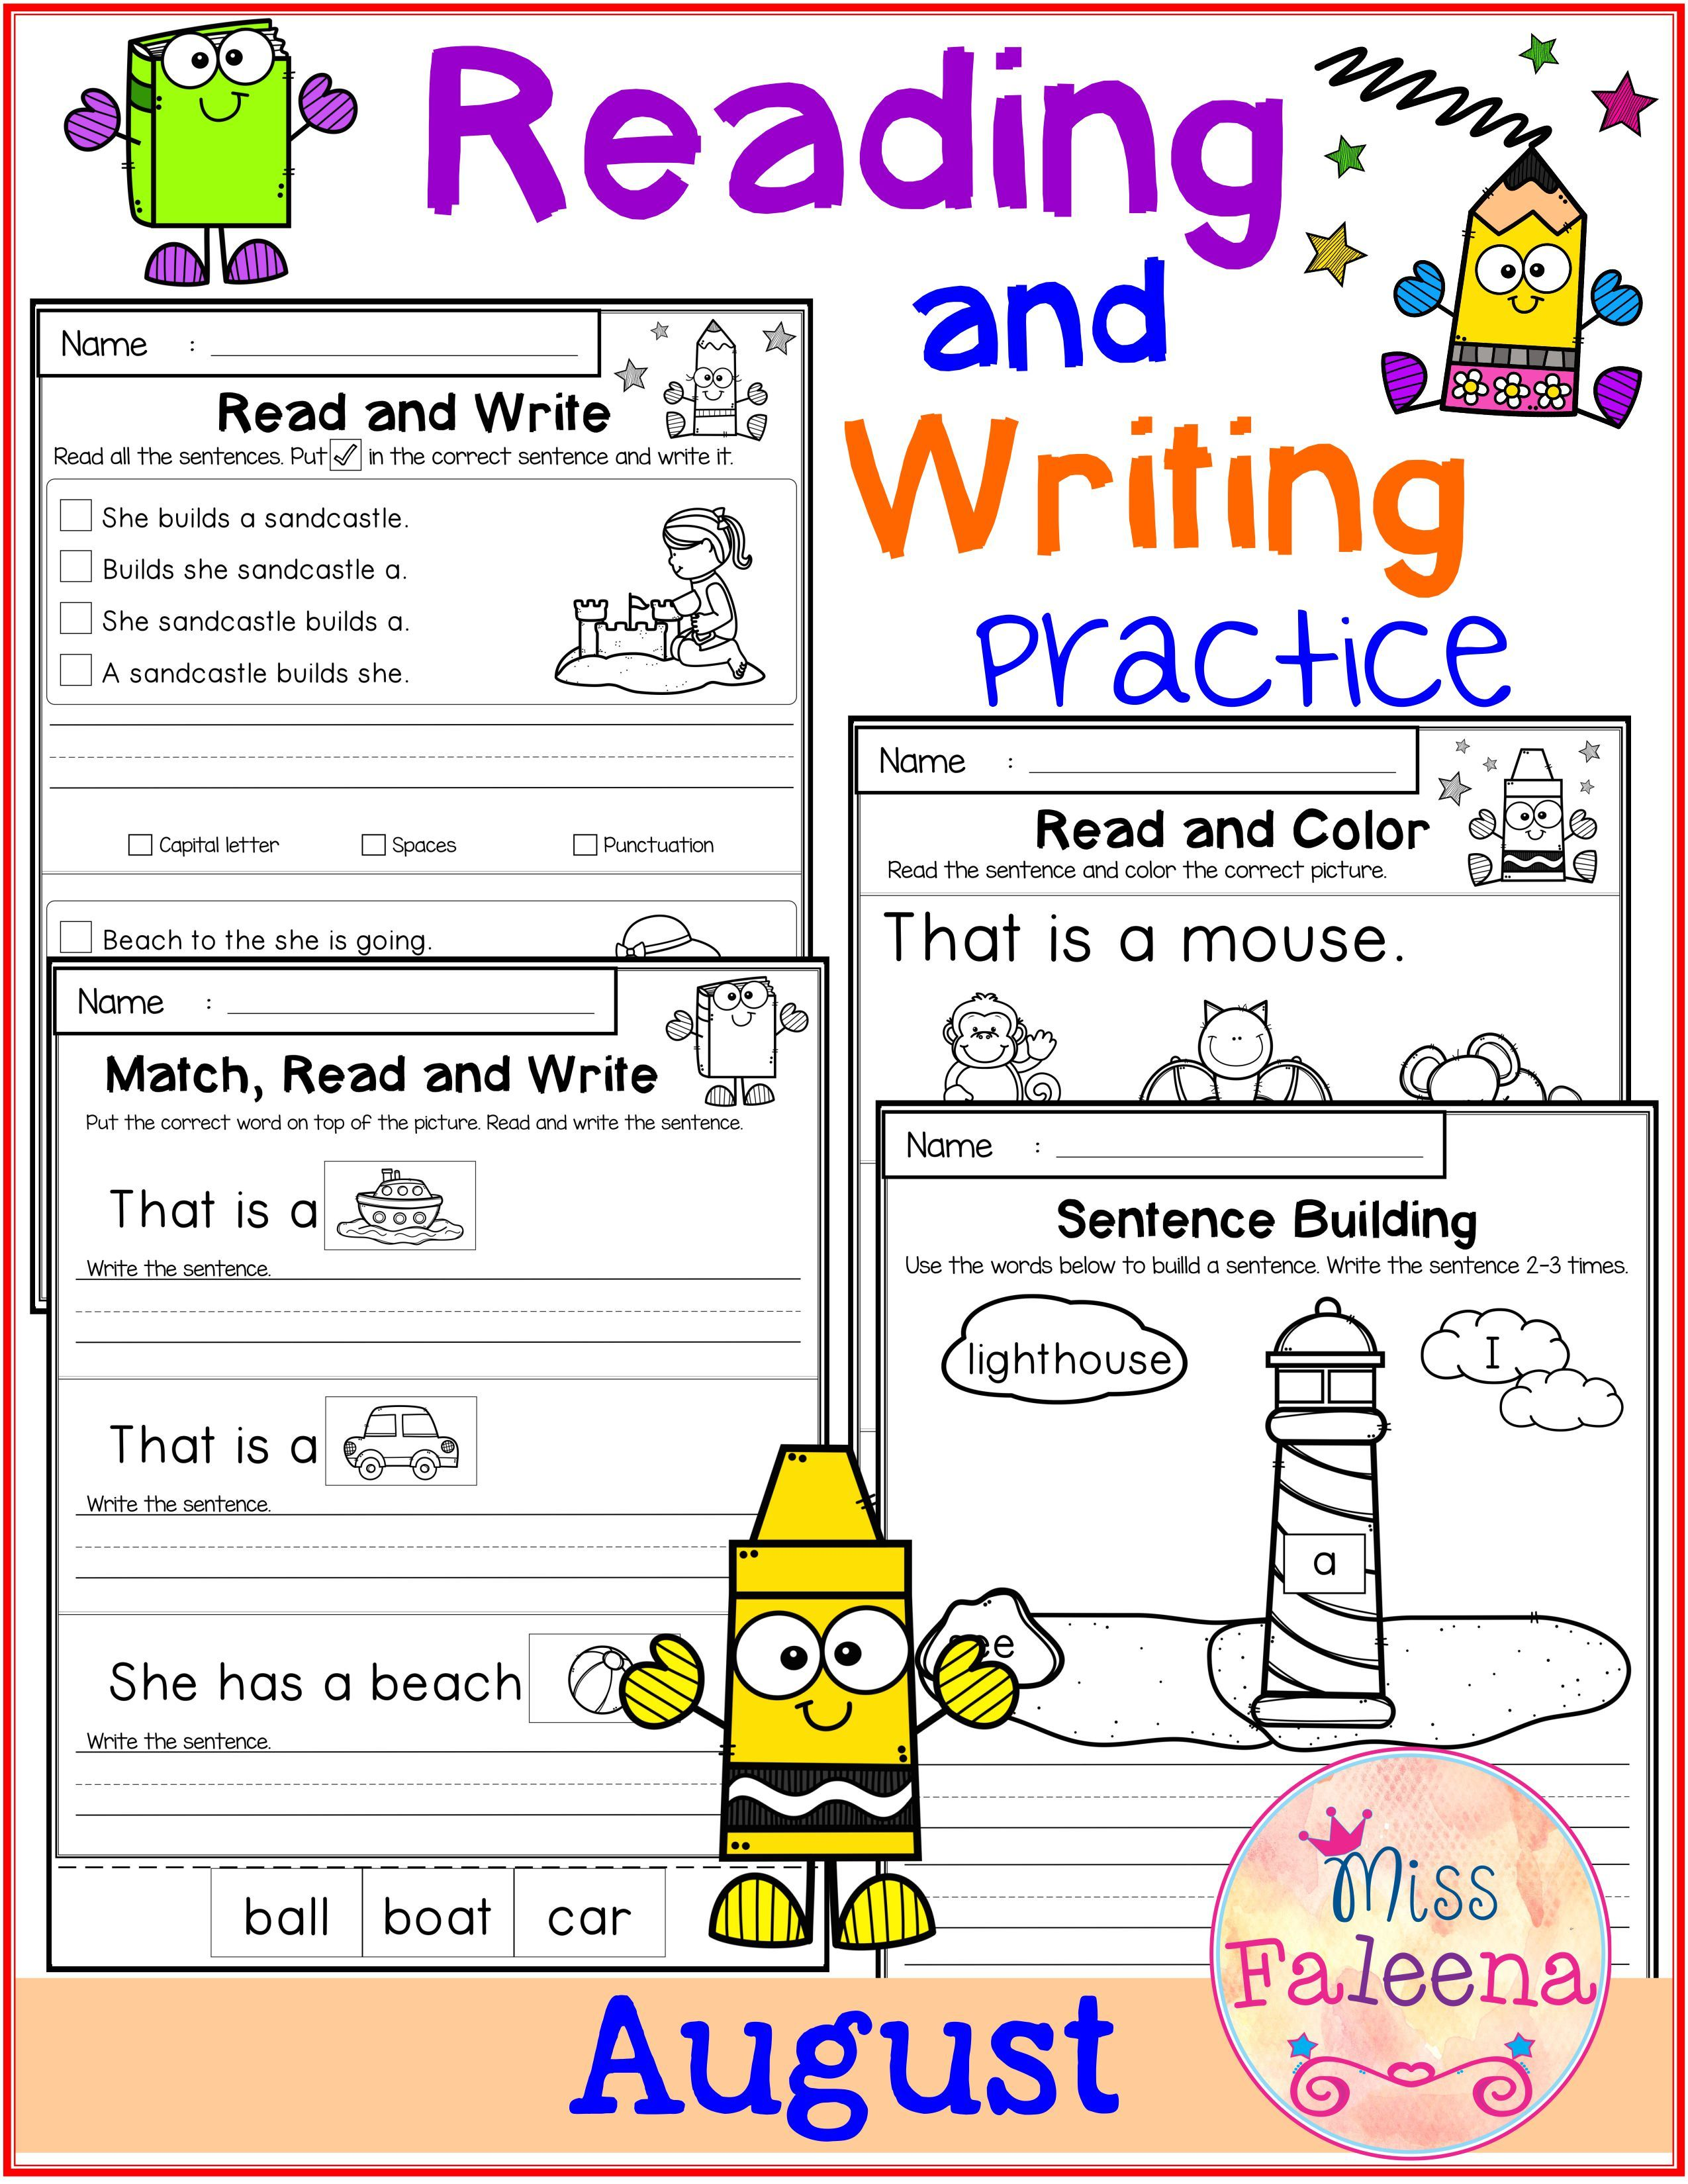 August Reading And Writing Practice